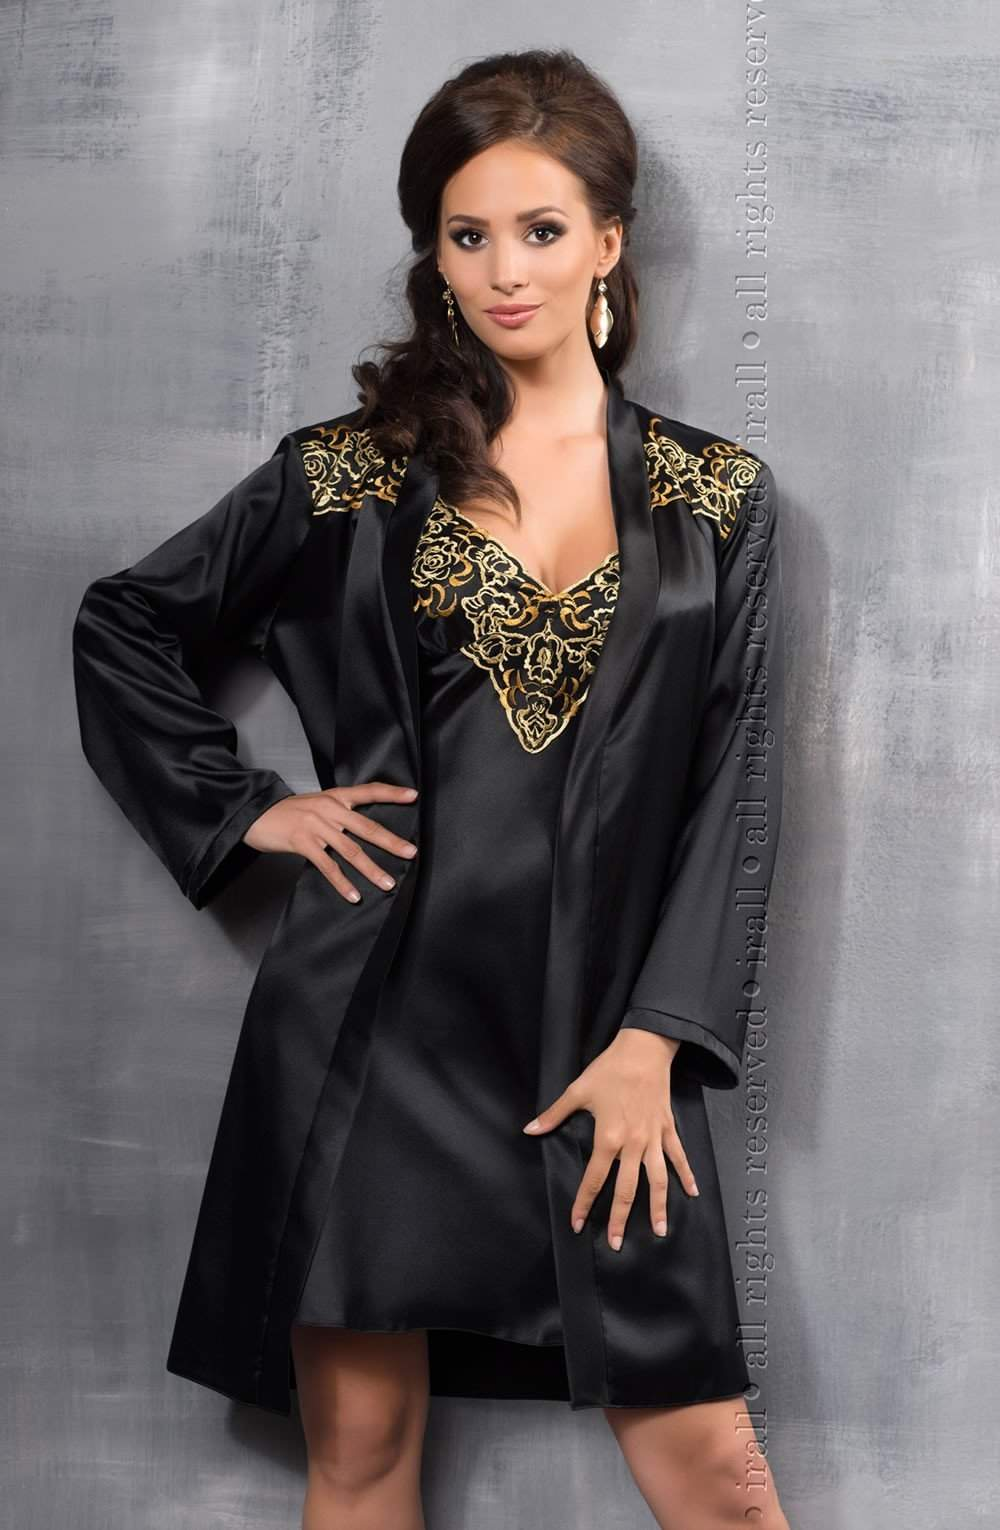 Luna Dressing Gown in Black/Gold by Irall - Irall - Katys Boutique Lingerie USA